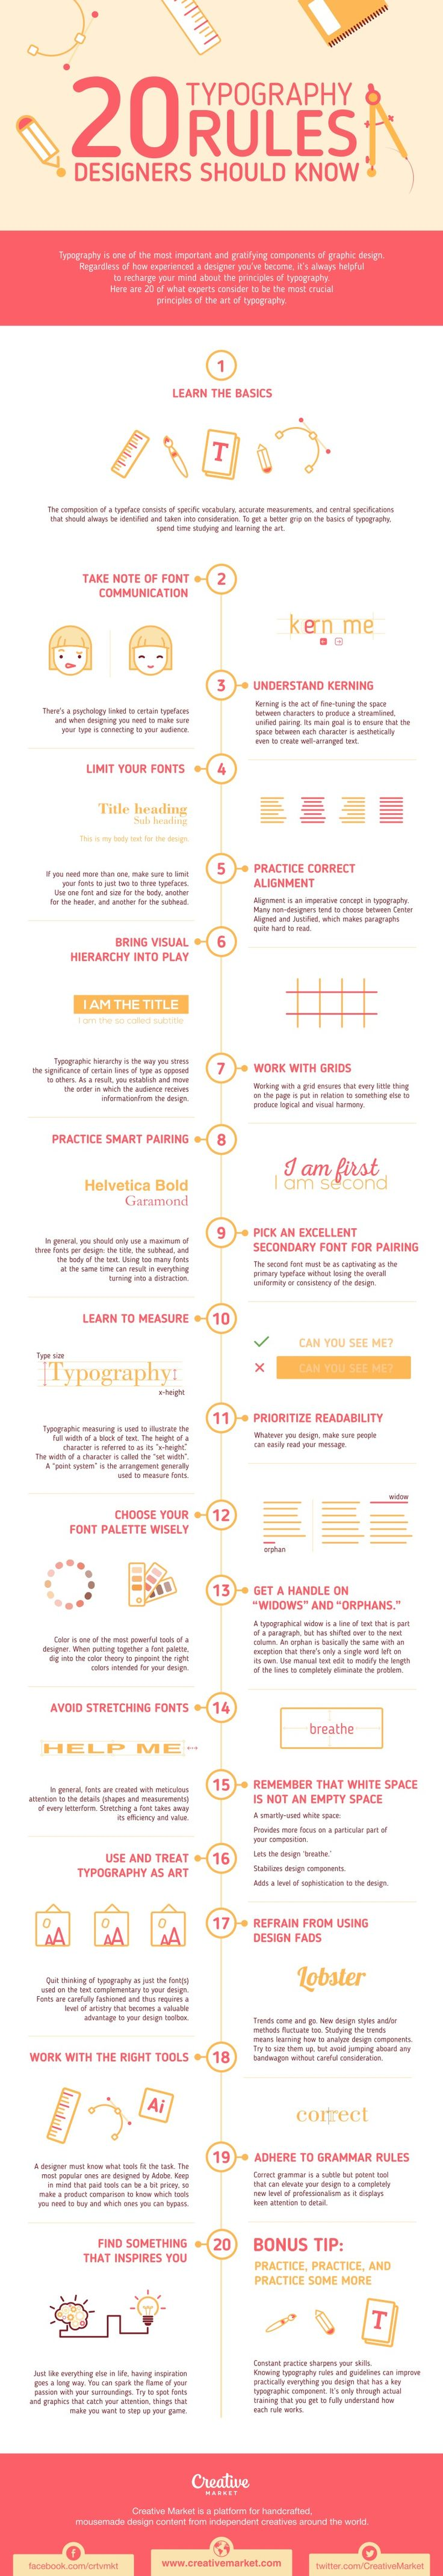 20 Typography Rules Every Designer Should Know #Infographic #Typography